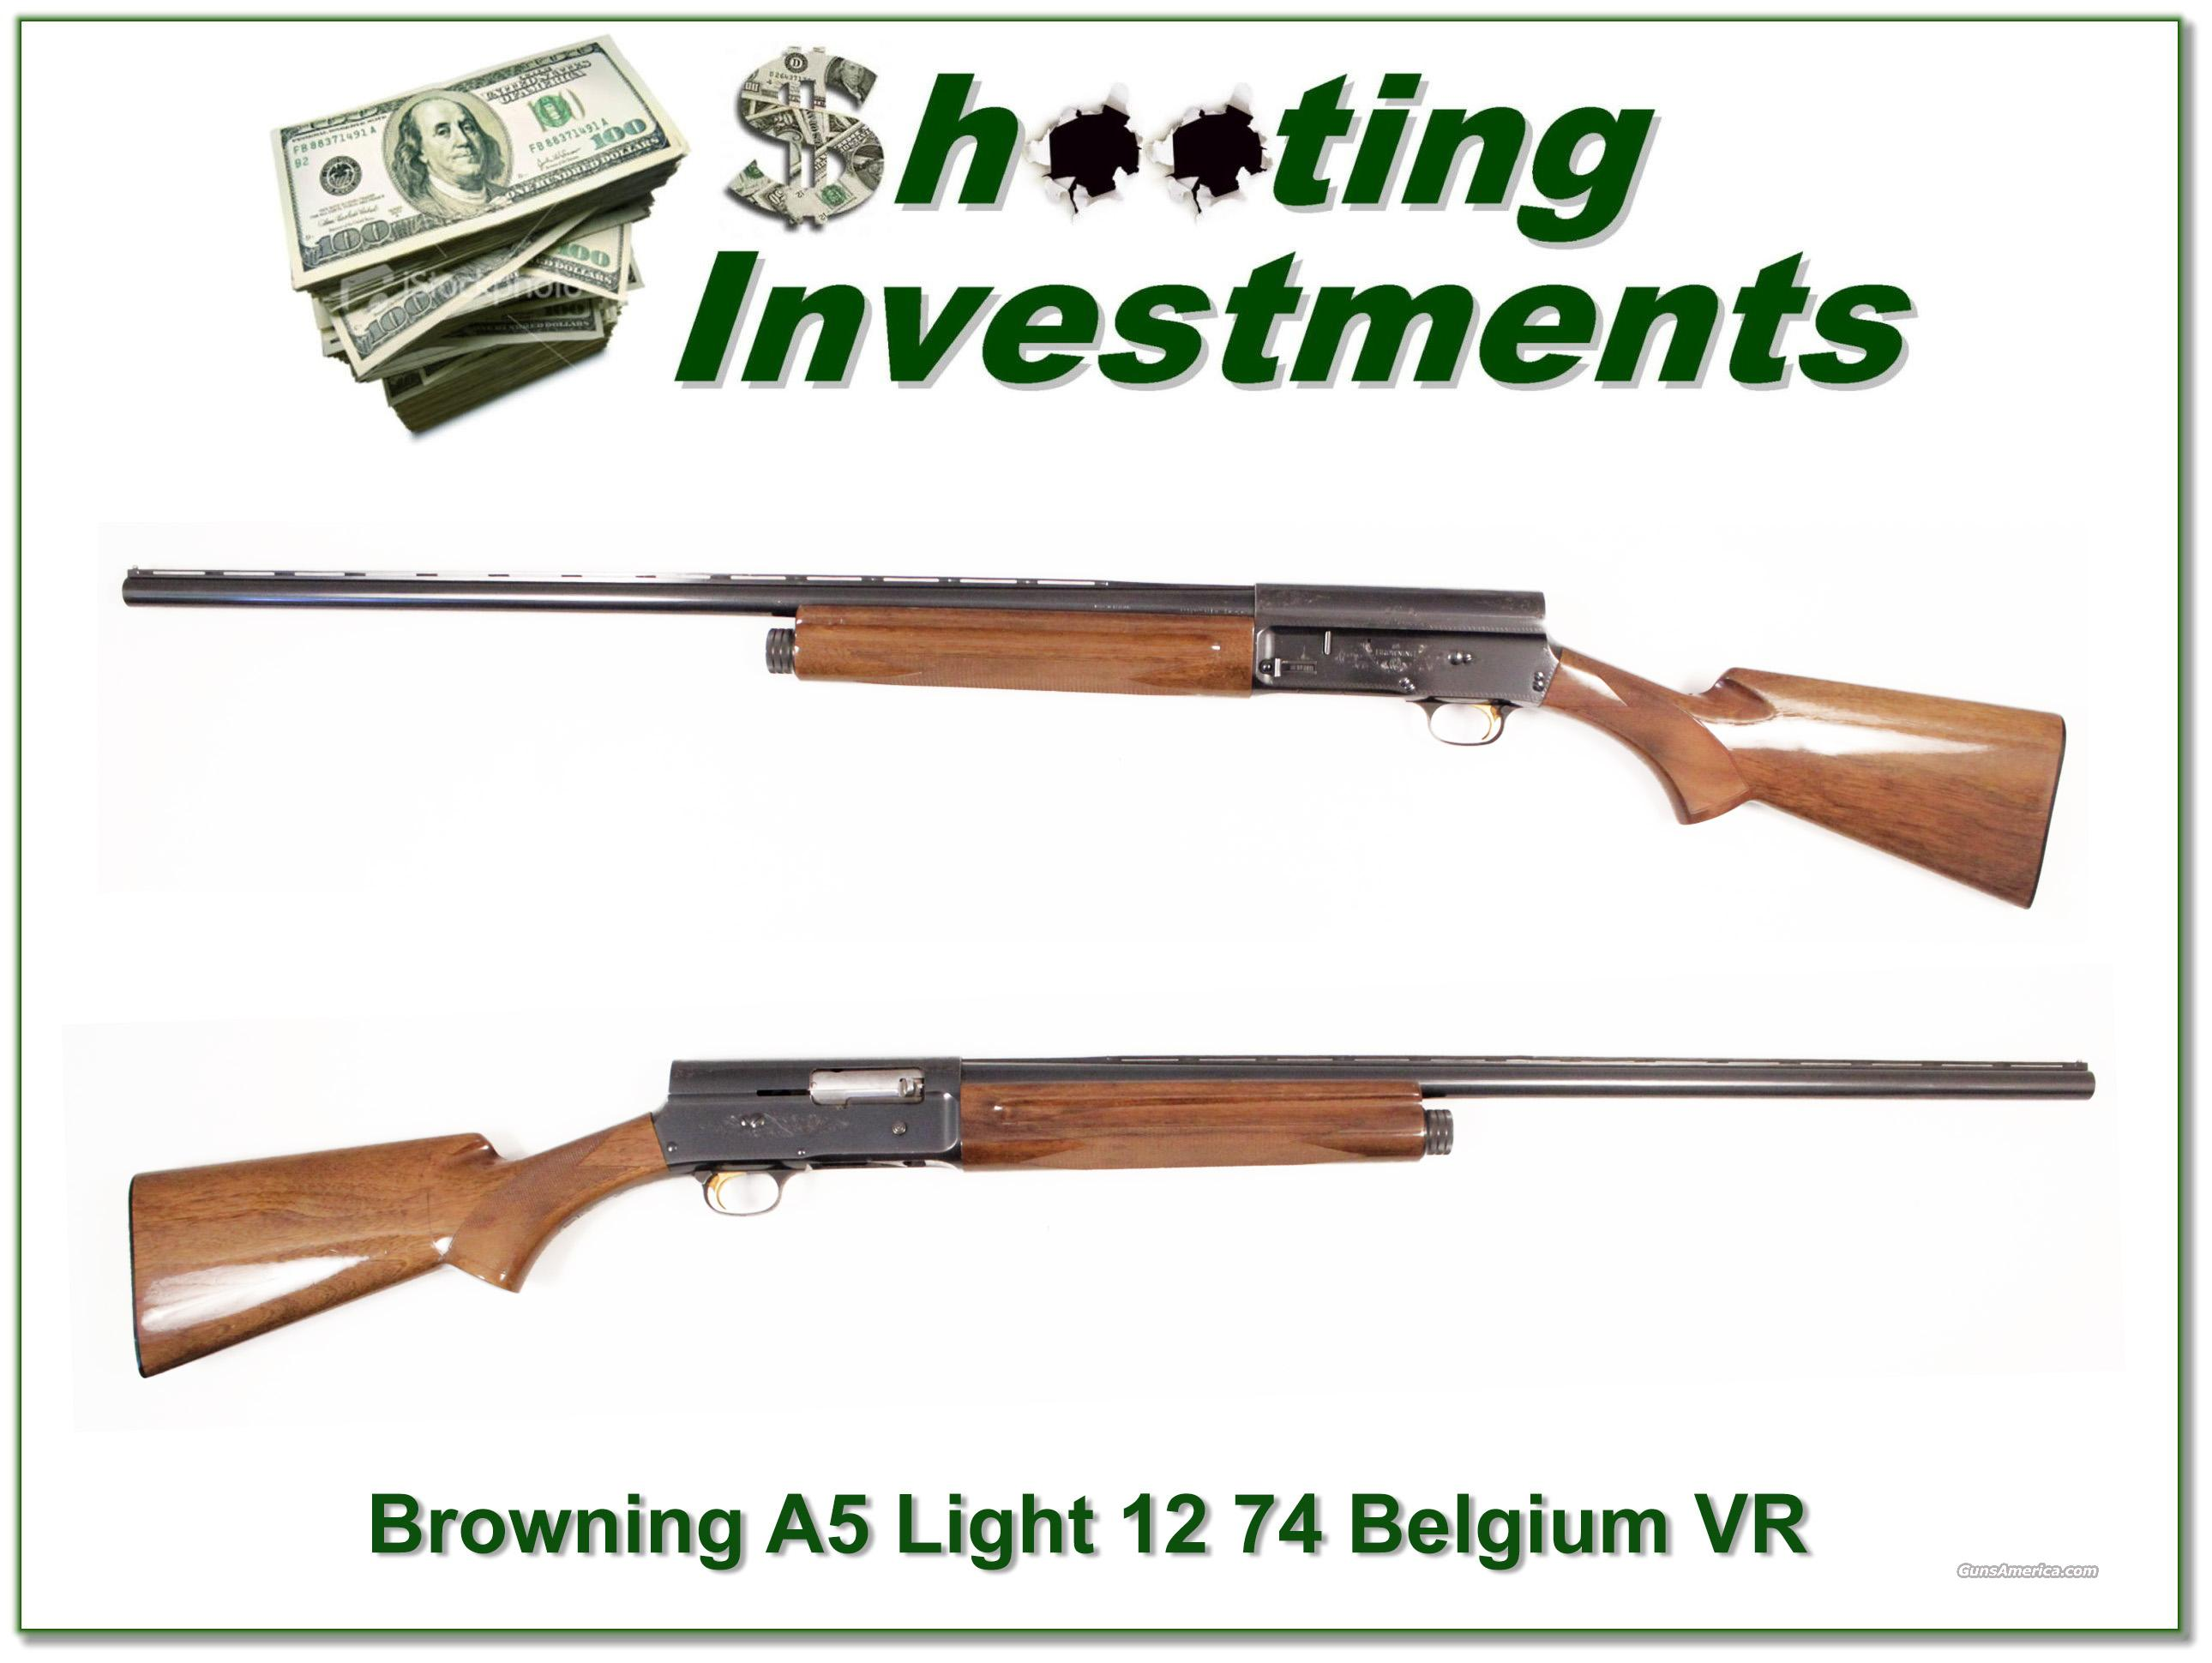 Browning A5 Light 12 74 Belgium Vent Rib  Guns > Shotguns > Browning Shotguns > Autoloaders > Hunting